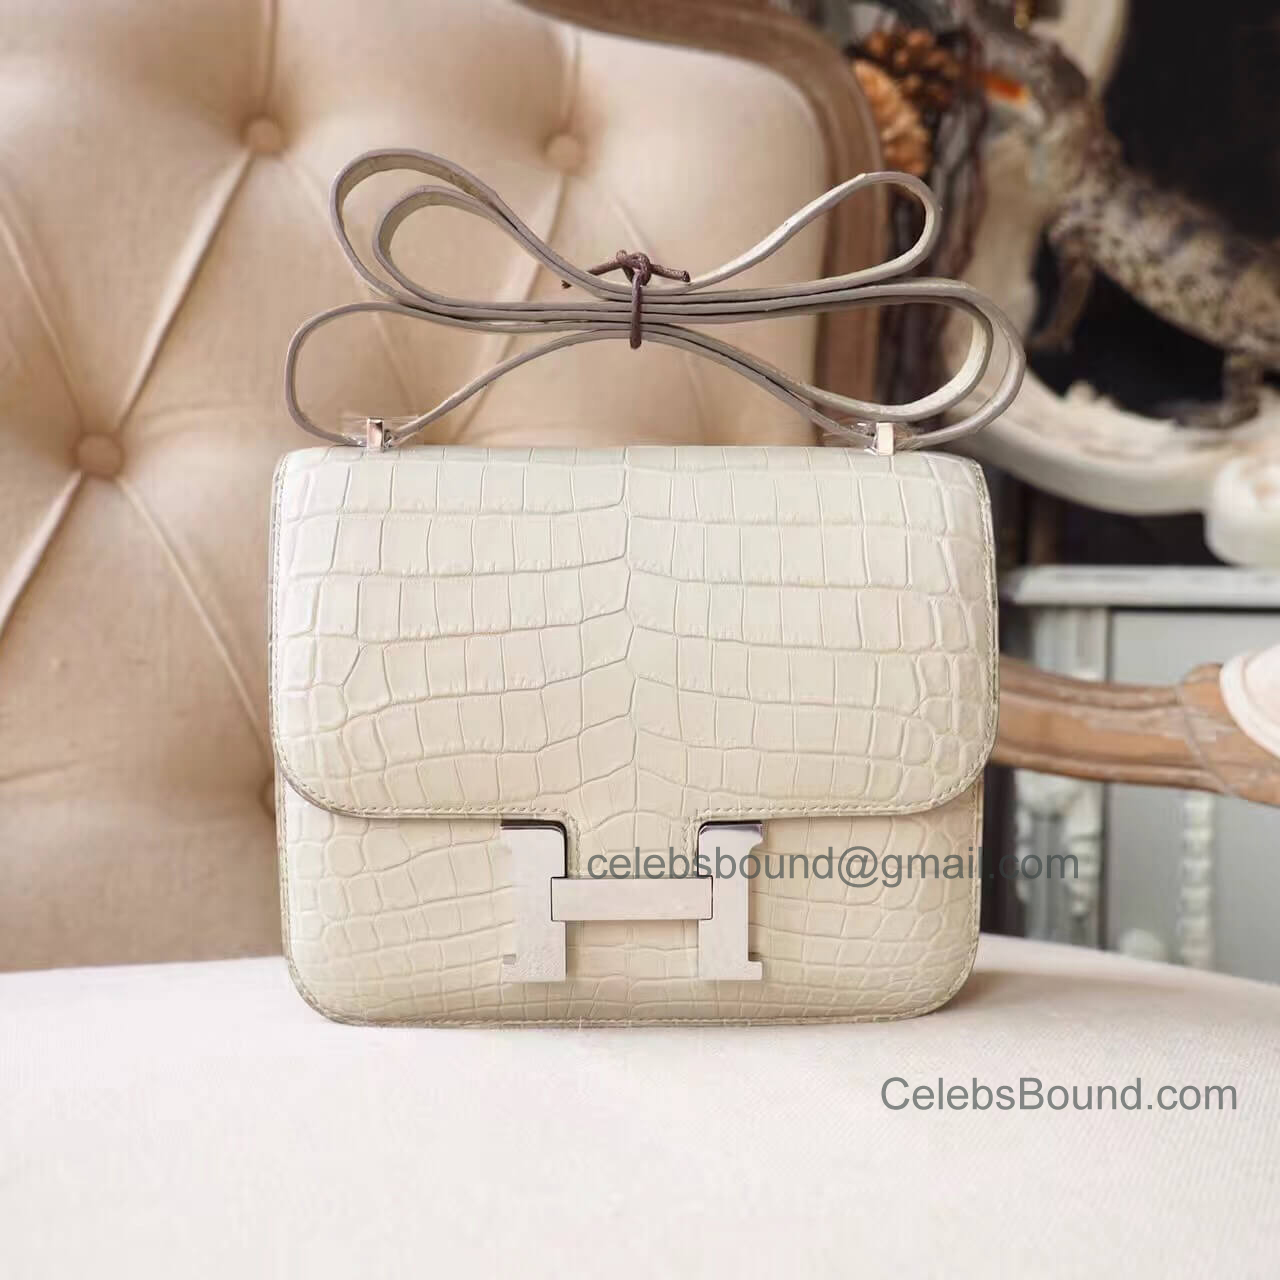 Replica Hermes Mini Constance 18 Bag in 8L Beton Matte Nile Croc PHW